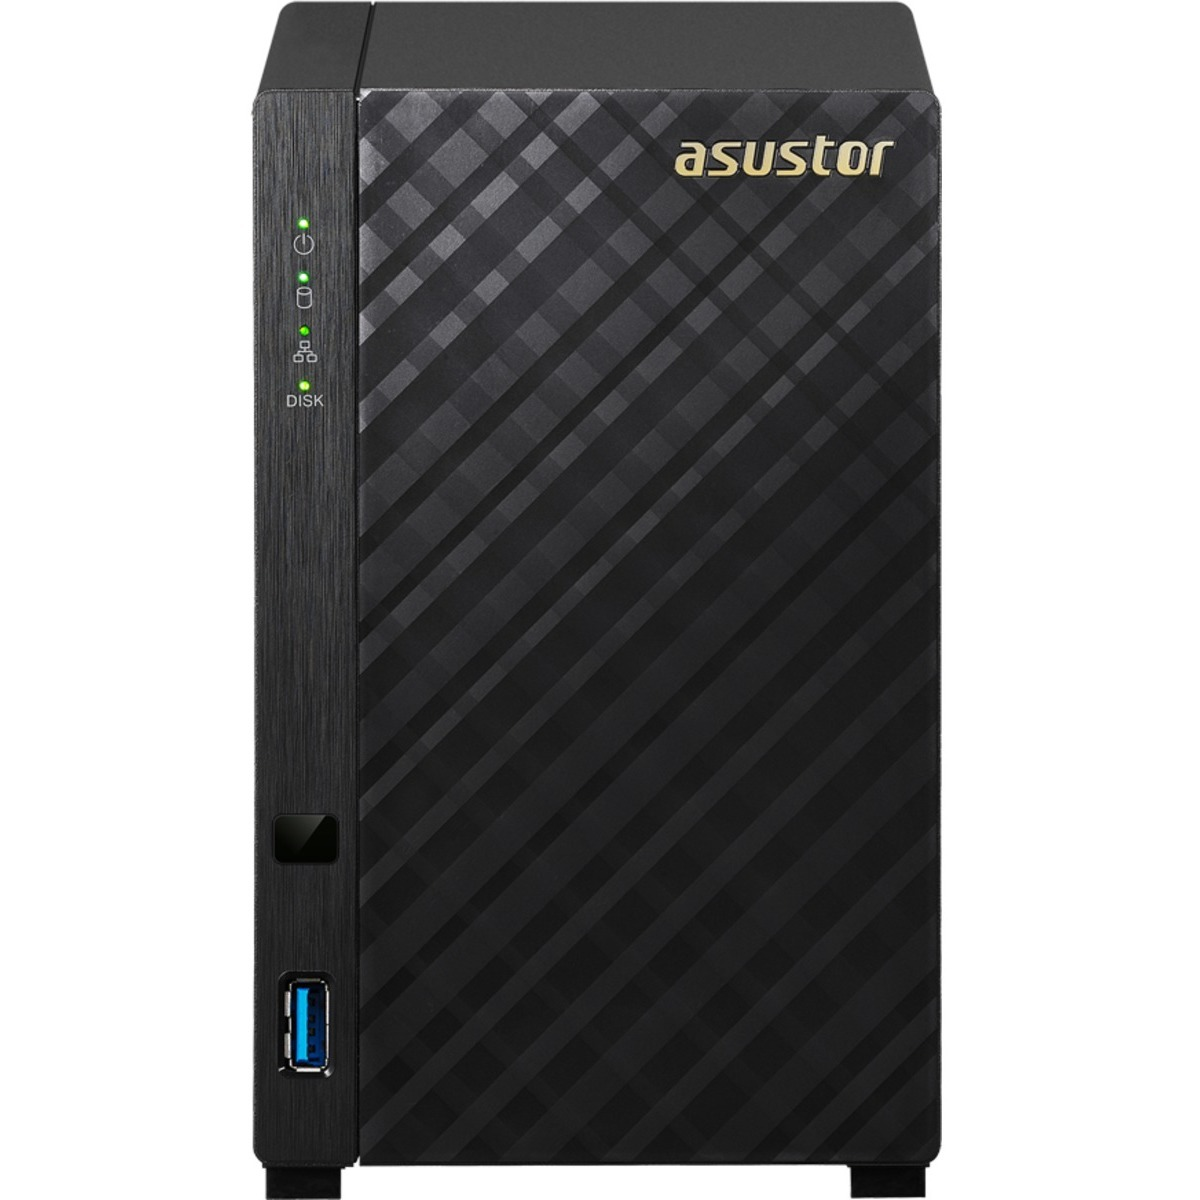 buy $535 ASUSTOR AS1002T v2 12tb Desktop NAS - Network Attached Storage Device 2x6000gb Western Digital Red WD60EFAX 3.5 IntelliPower SATA 6Gb/s HDD NAS Class Drives Installed - Burn-In Tested - nas headquarters buy network attached storage server device das new raid-5 free shipping usa inventory clearance sale happening now AS1002T v2